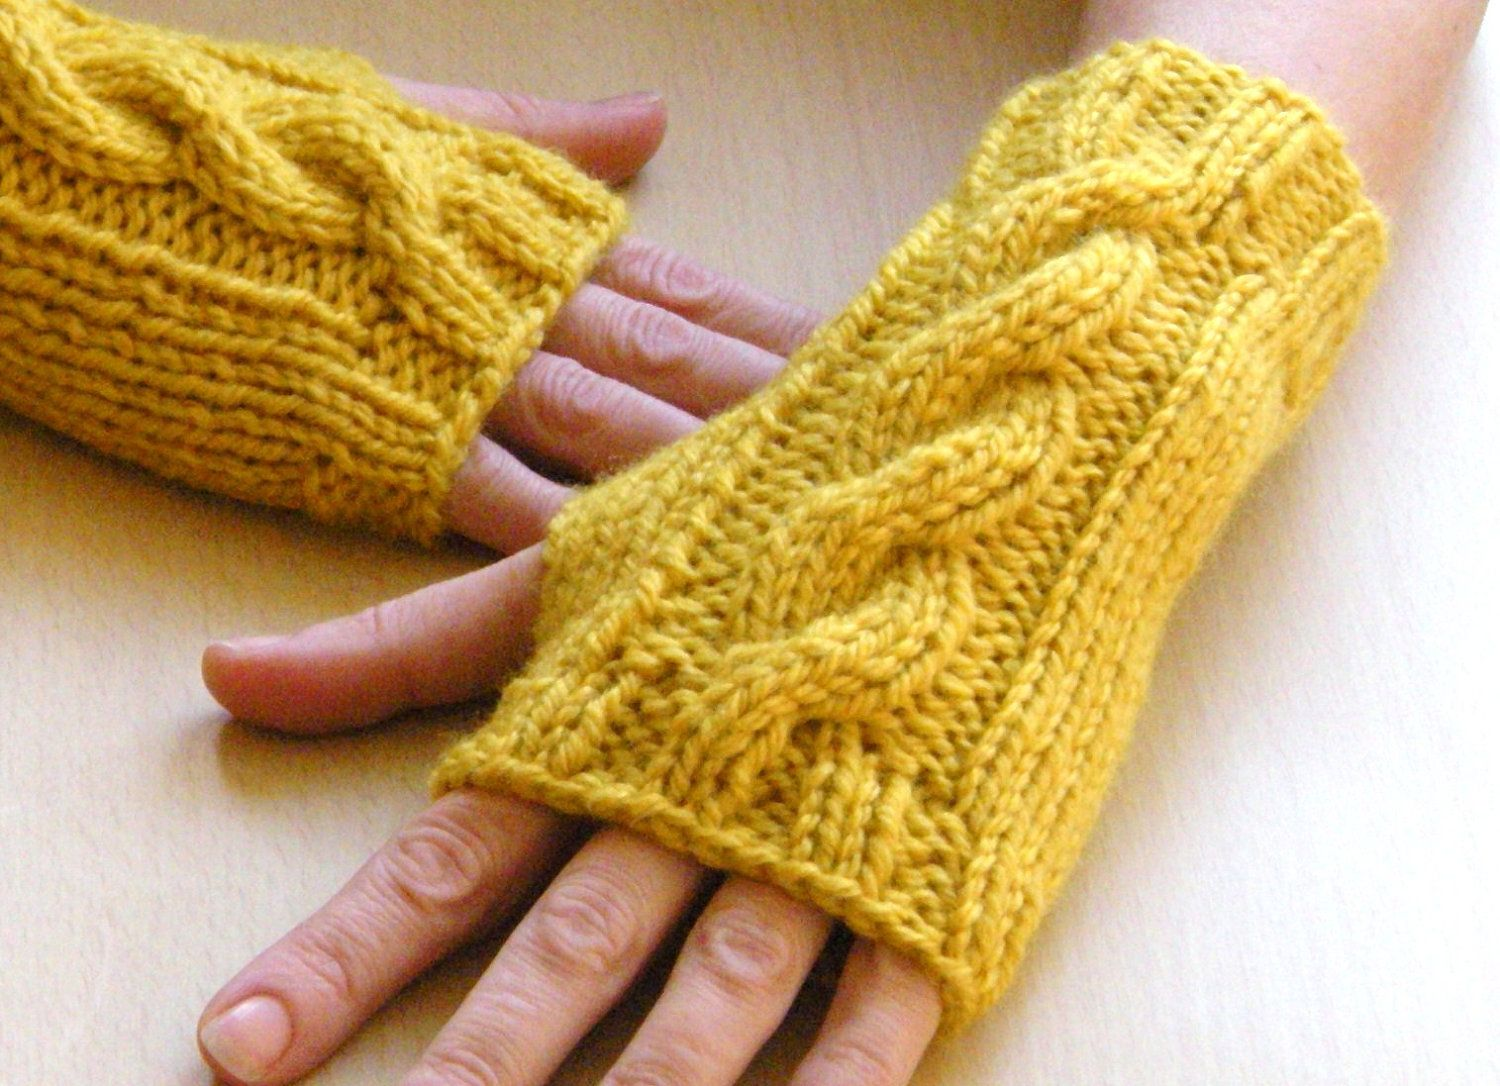 Knitting fingerless gloves in the round - Saffron Wrist Warmers Cable Knit Fingerless Gloves Fingerless Mittens Gold Yellow Knit Gloves